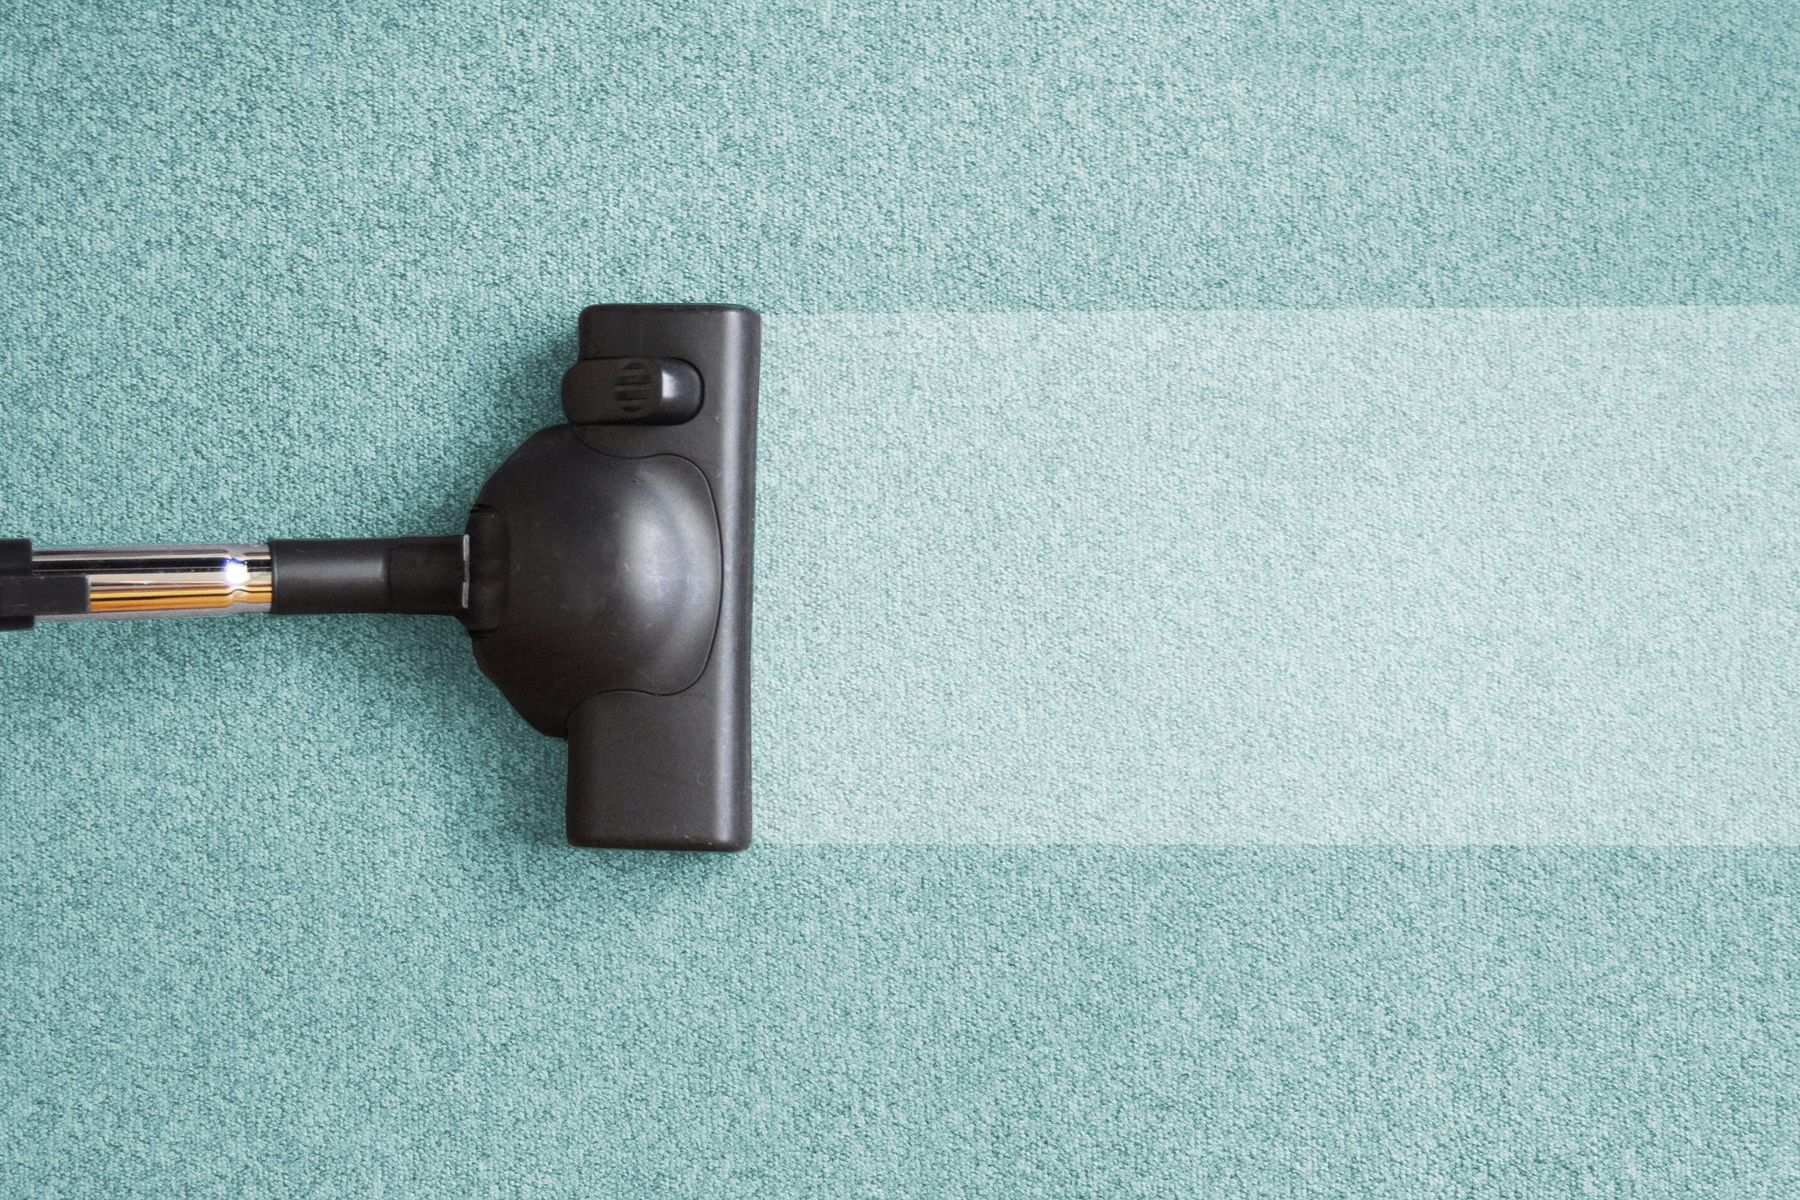 Vacuum cleaner on a carpet helping to remove burn marks